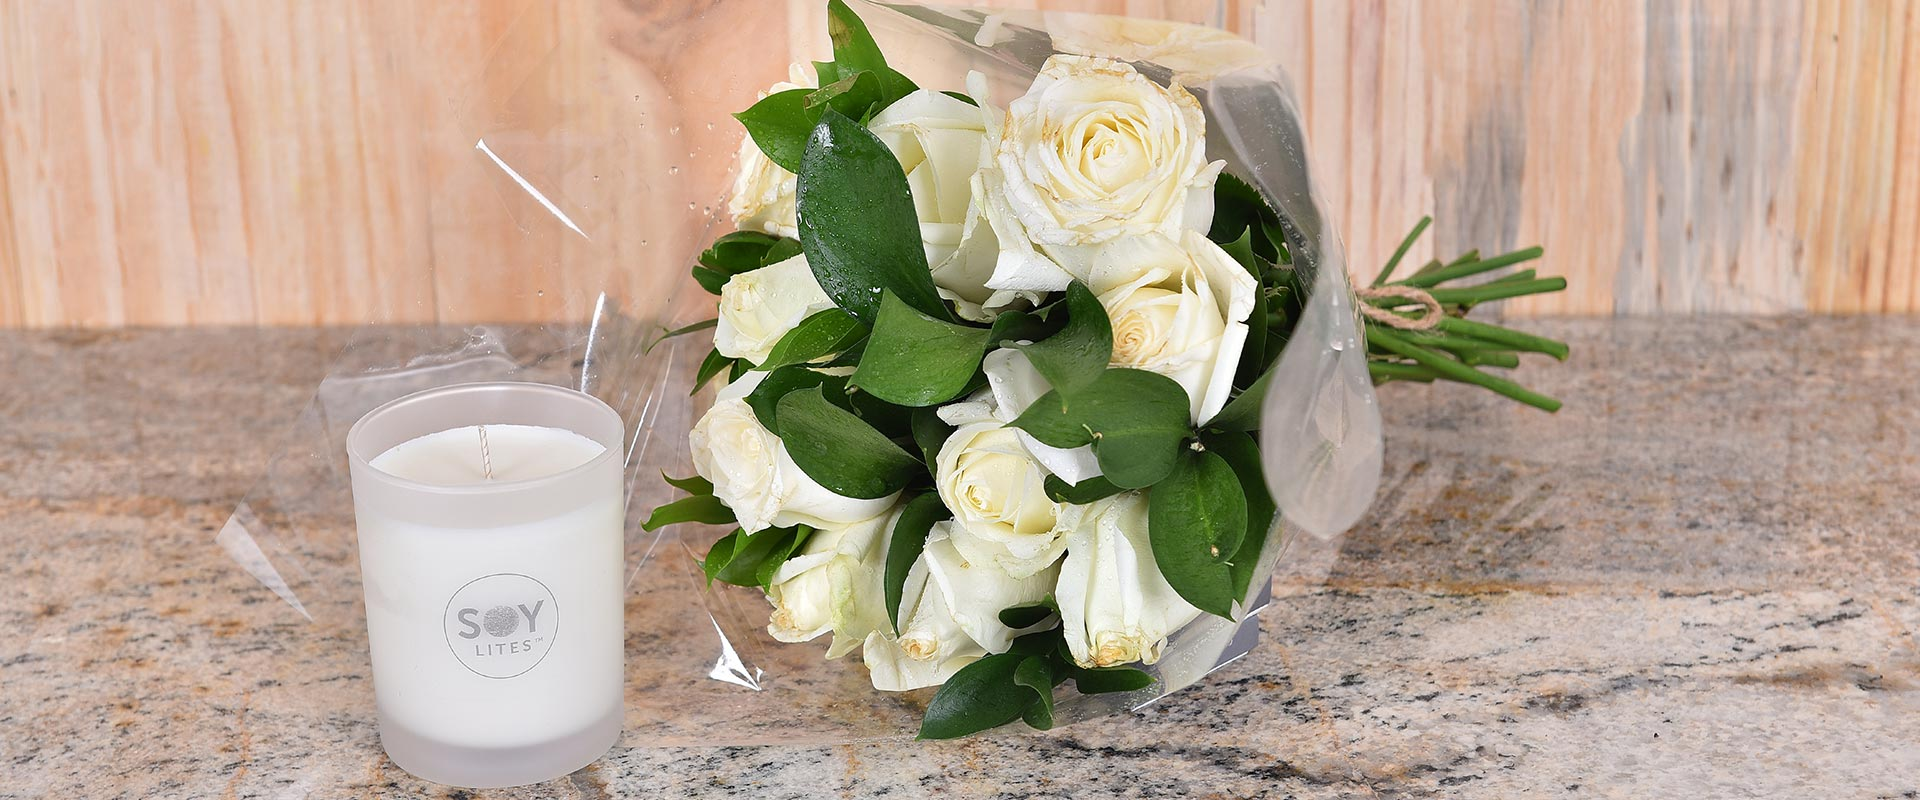 Order beautiful fresh flowers online hamper world izmirmasajfo